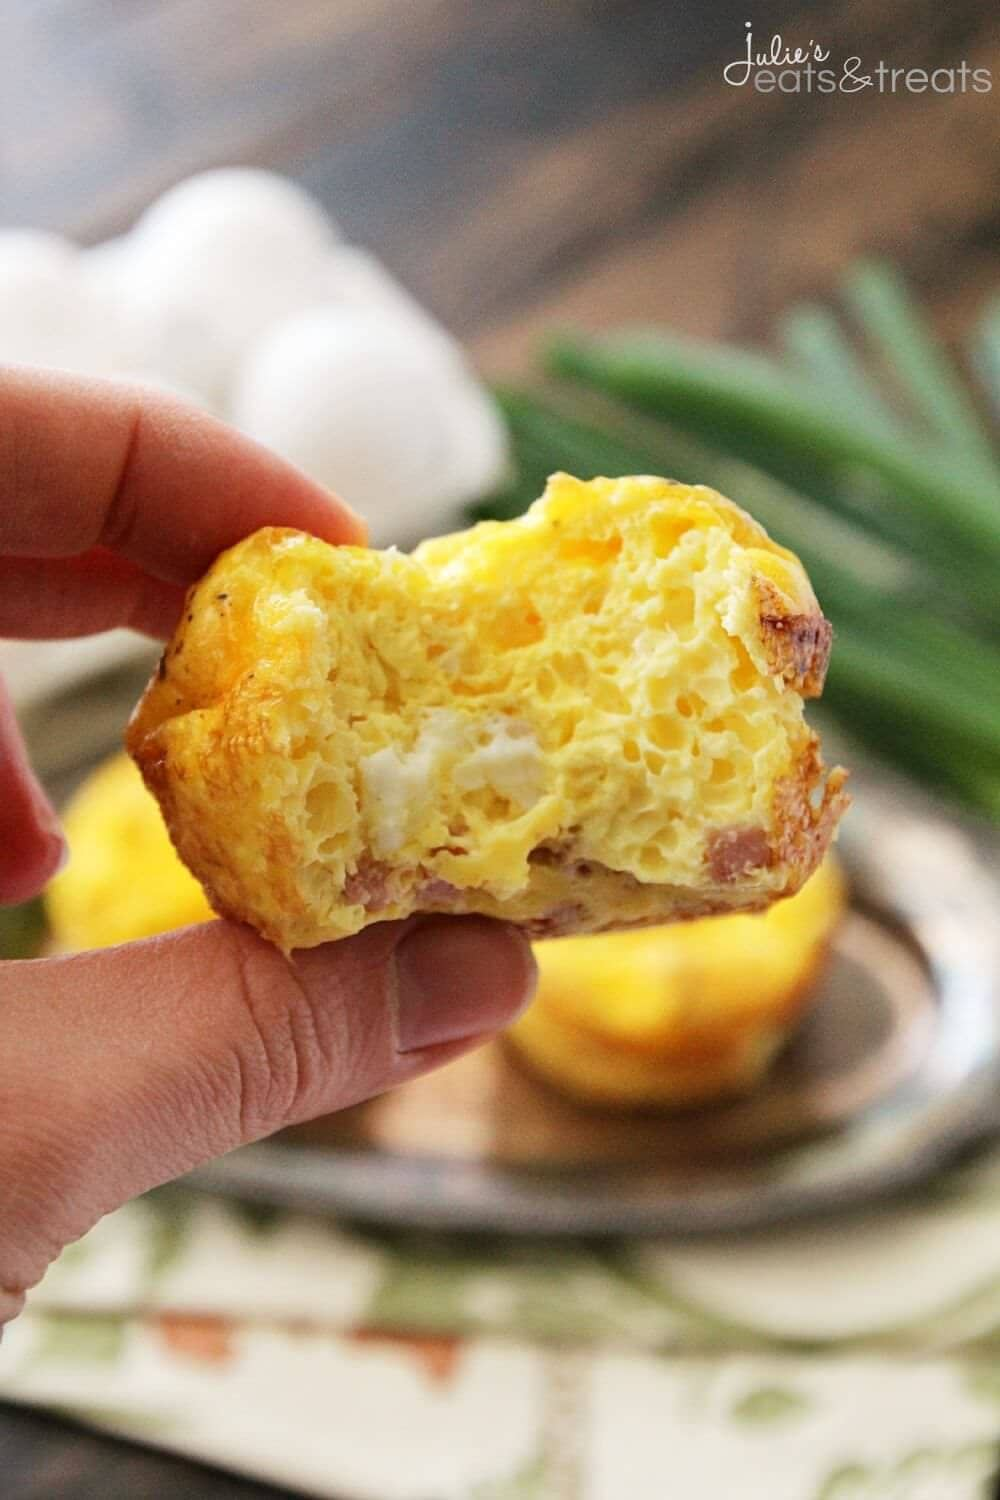 Ham & Cheese Egg Muffin Recipe ~ Quick, Easy and Delicious Breakfast or Snack! Fluffy Egg Muffins with Ham & Cheese!